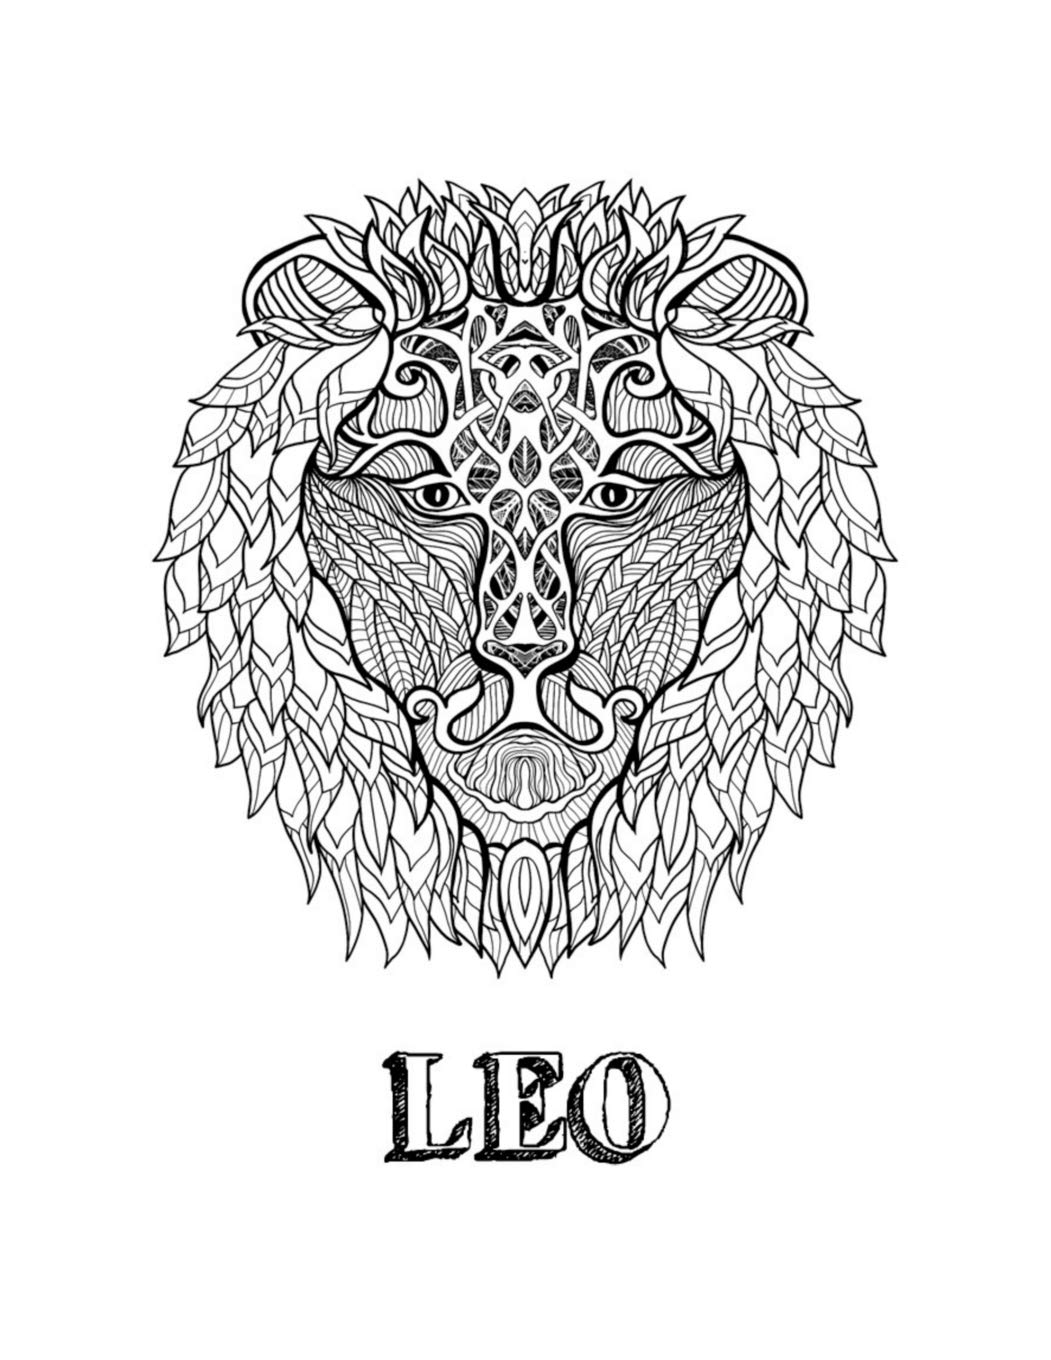 Leo Coloring Book With Three Different Styles Of All Twelve